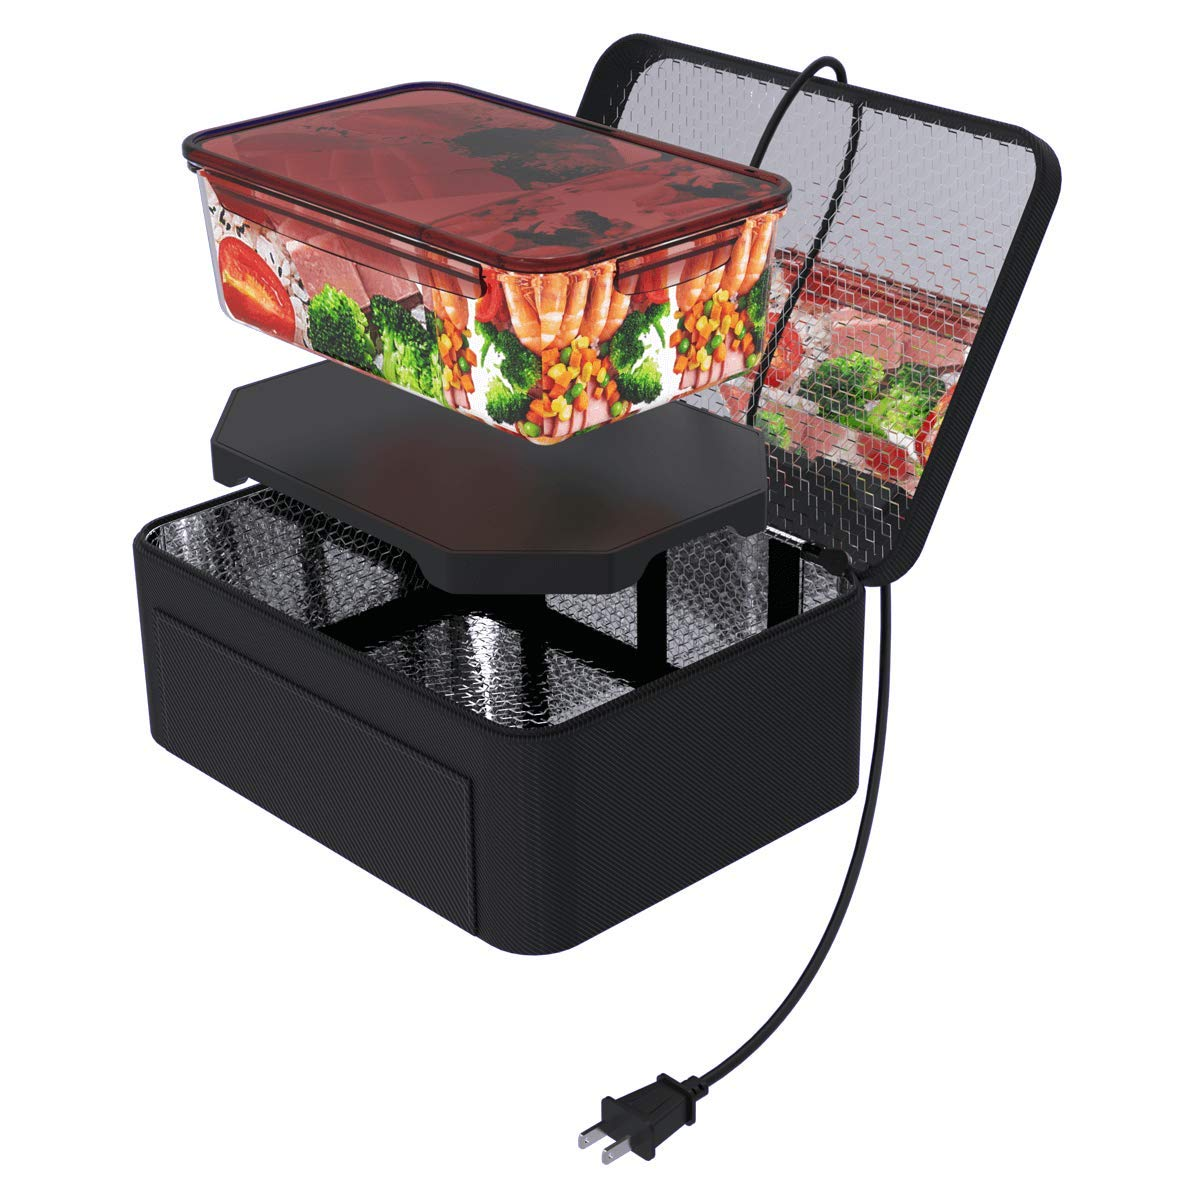 Aotto Portable Personal Reheating Microwave